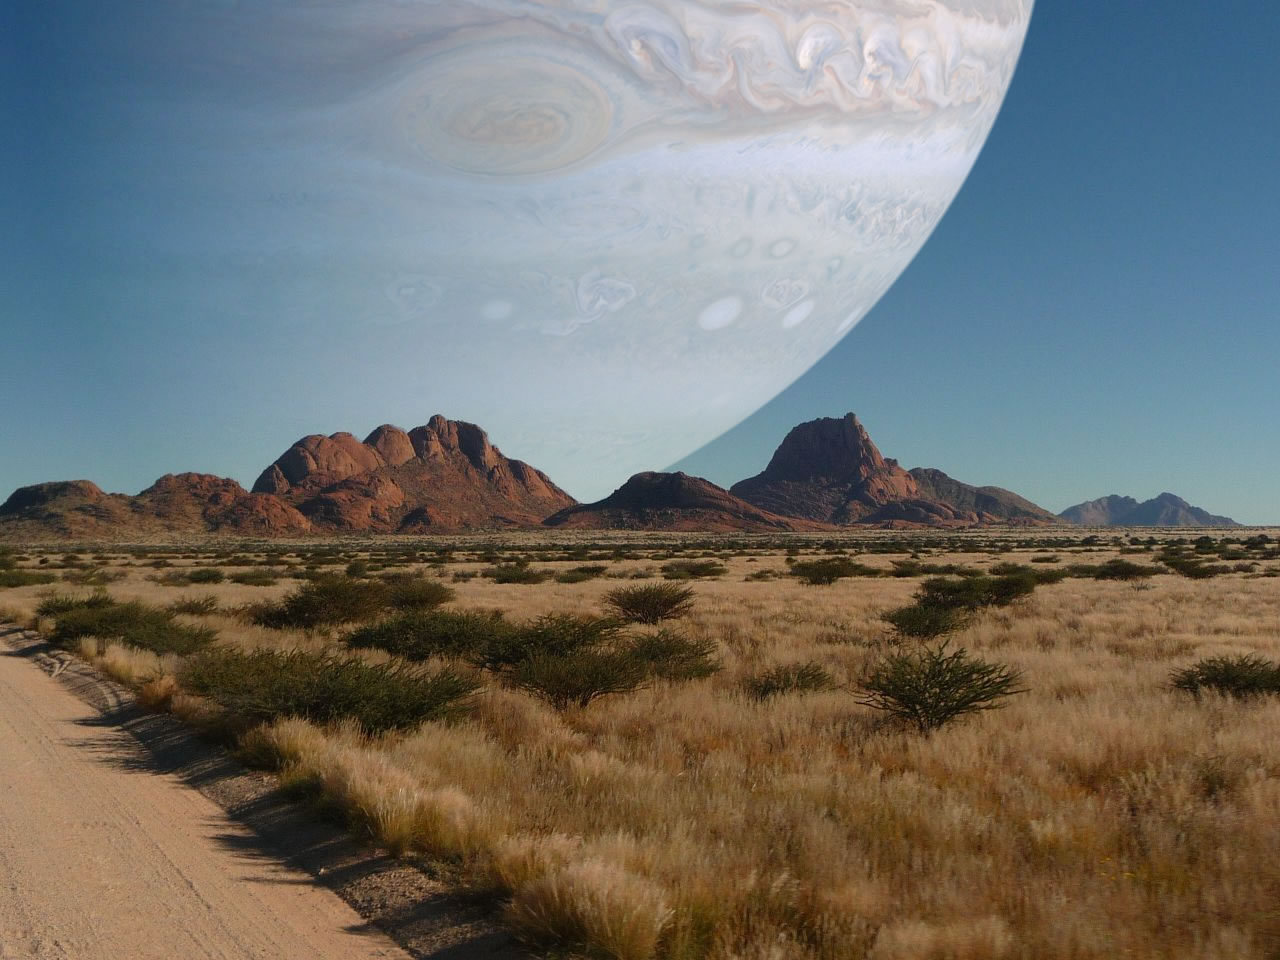 if jupiter was as close as the moon